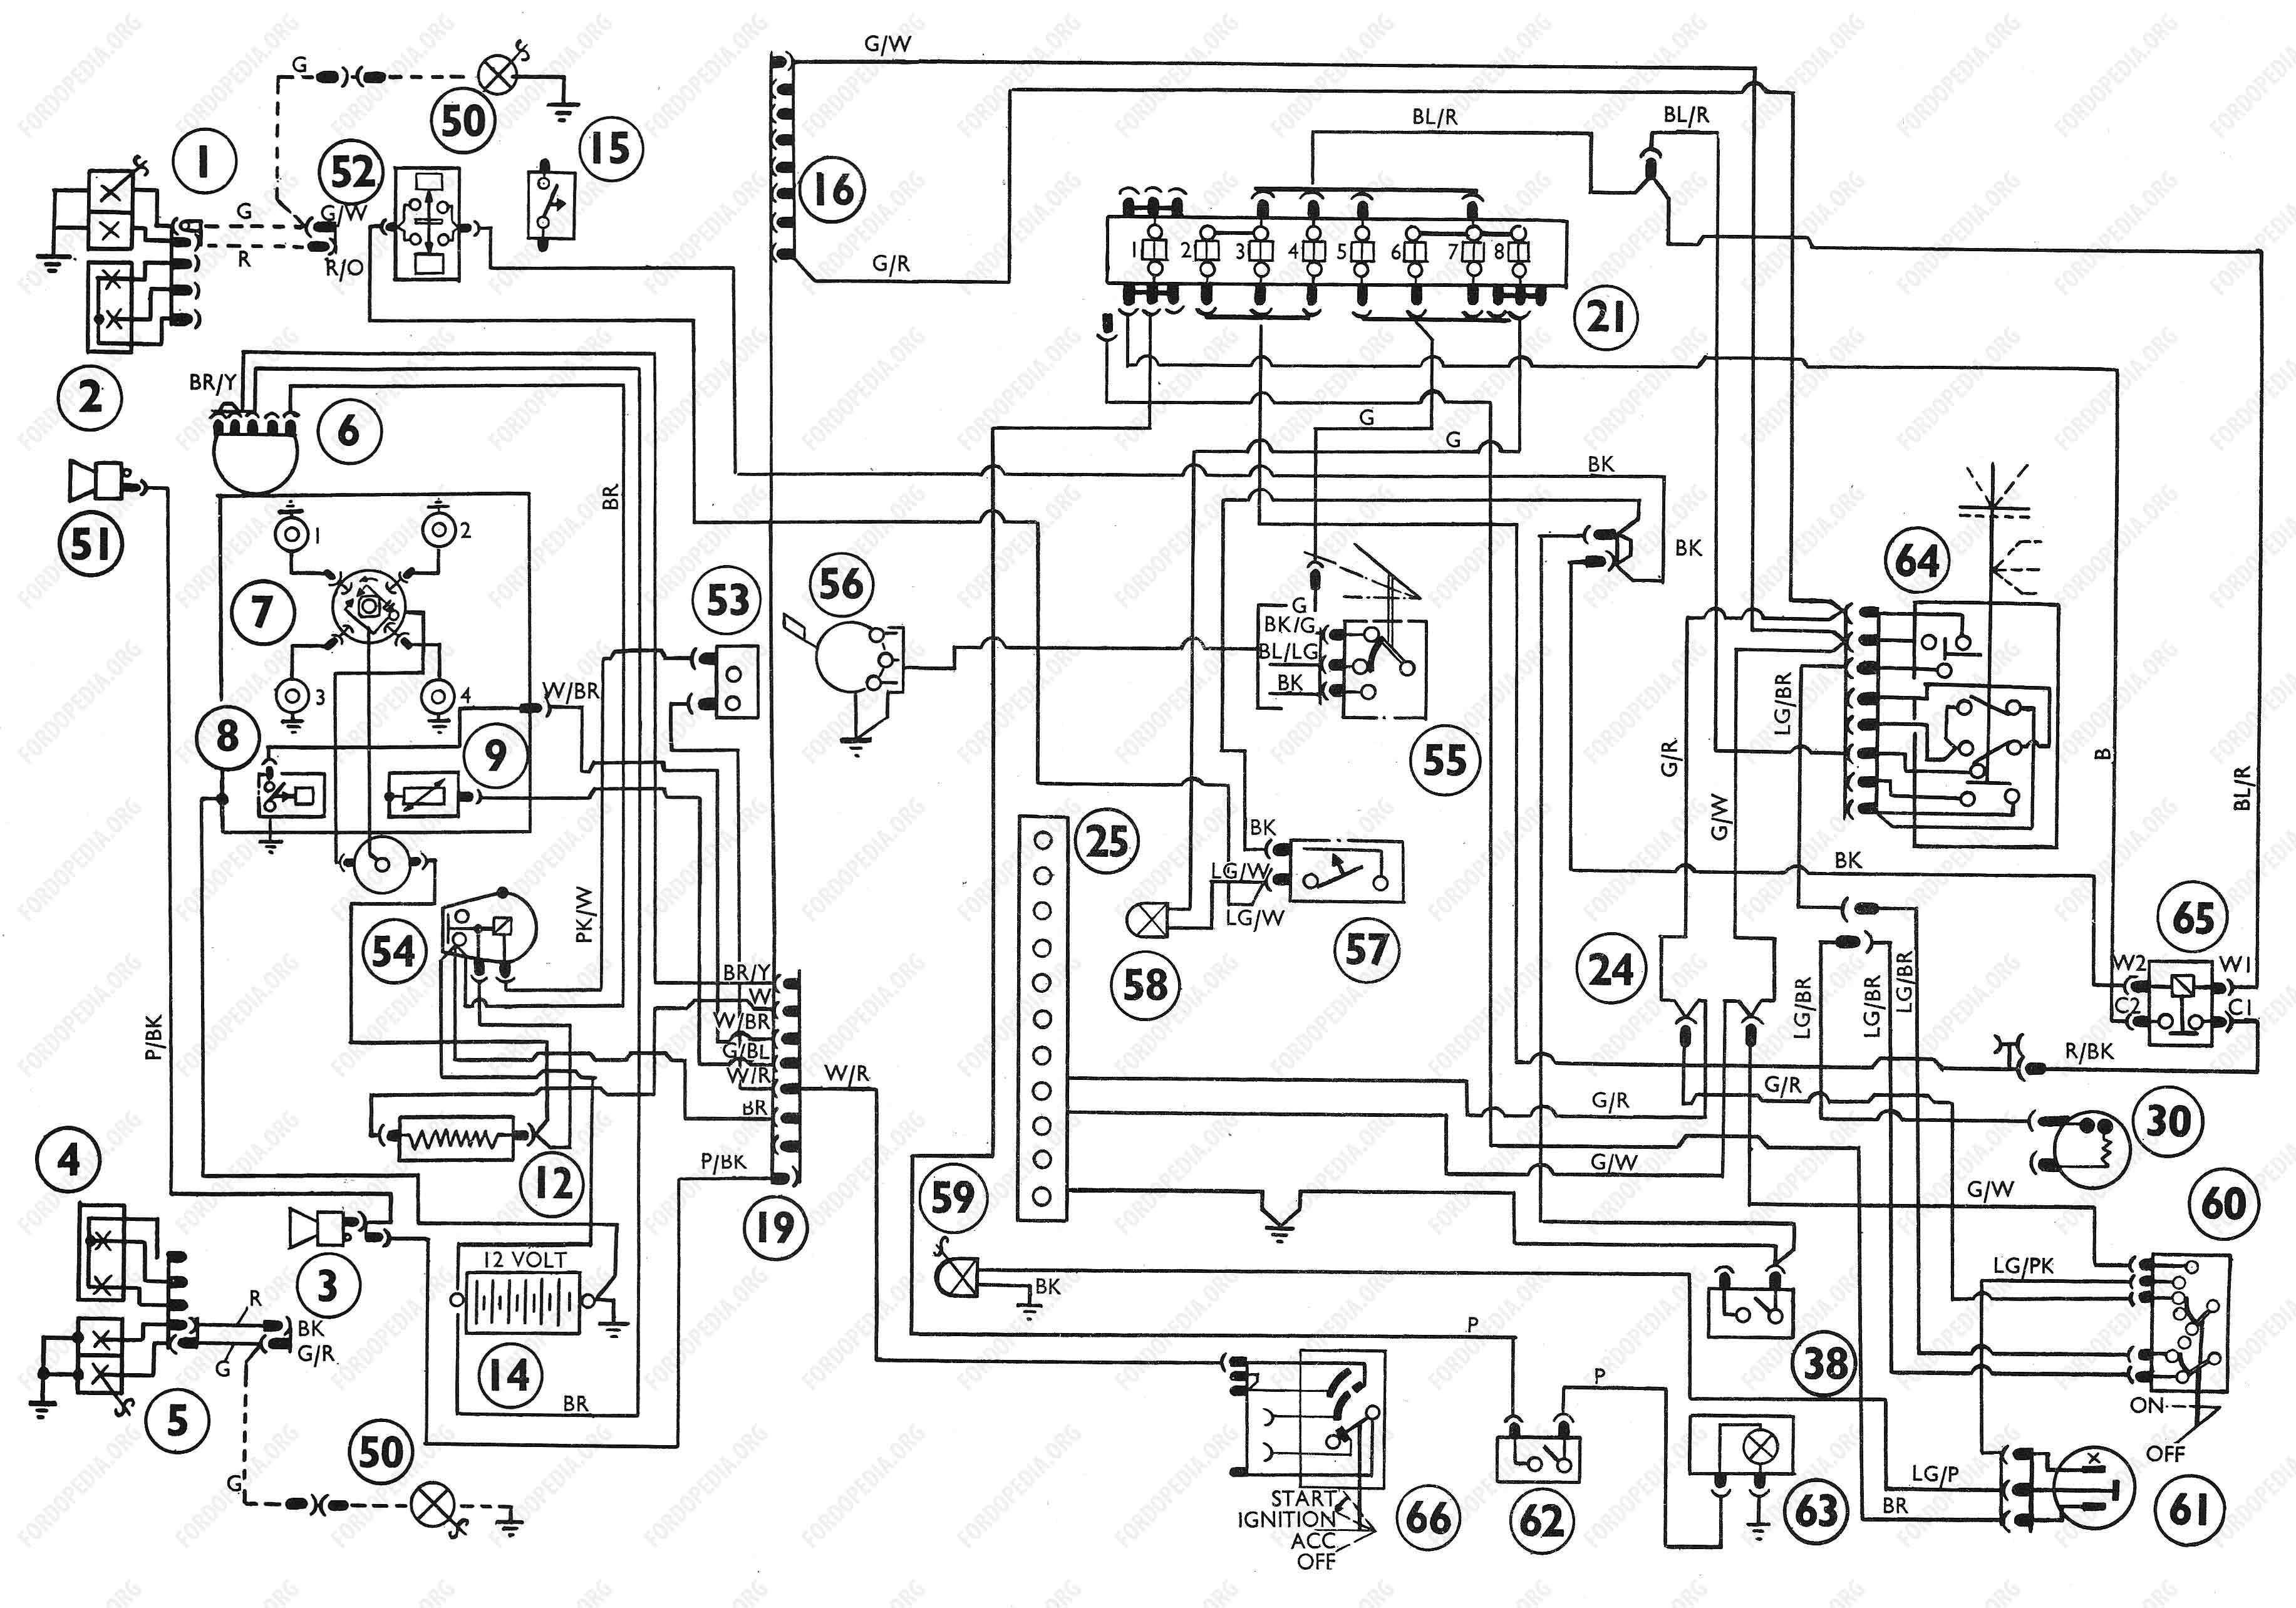 Ford Transit Wiring Diagram Diagrams Archive Of Automotive 2010 Dodge Ram 2500 Fordopedia Org Rh Mk7 Electrical Schematic